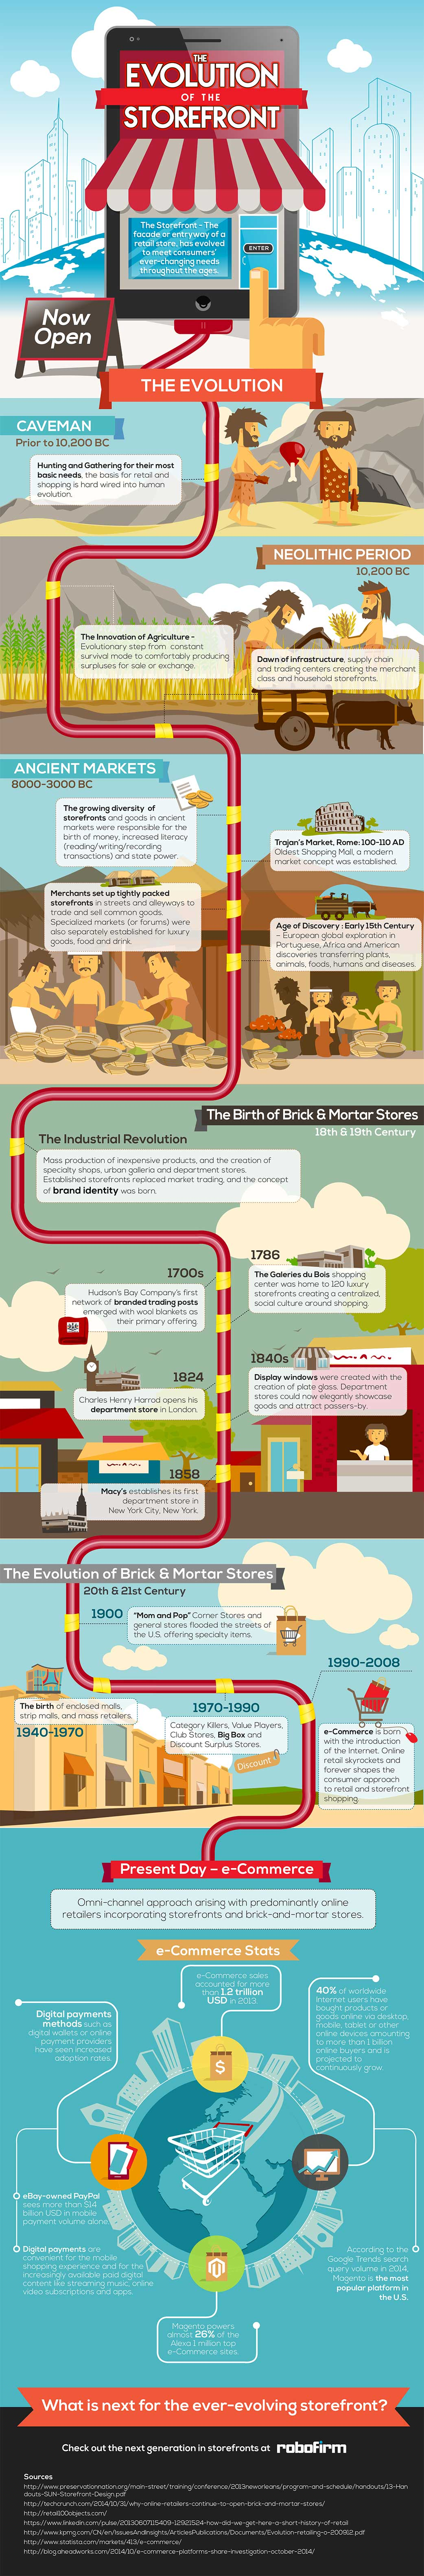 How Did Retail Stores Evolve?